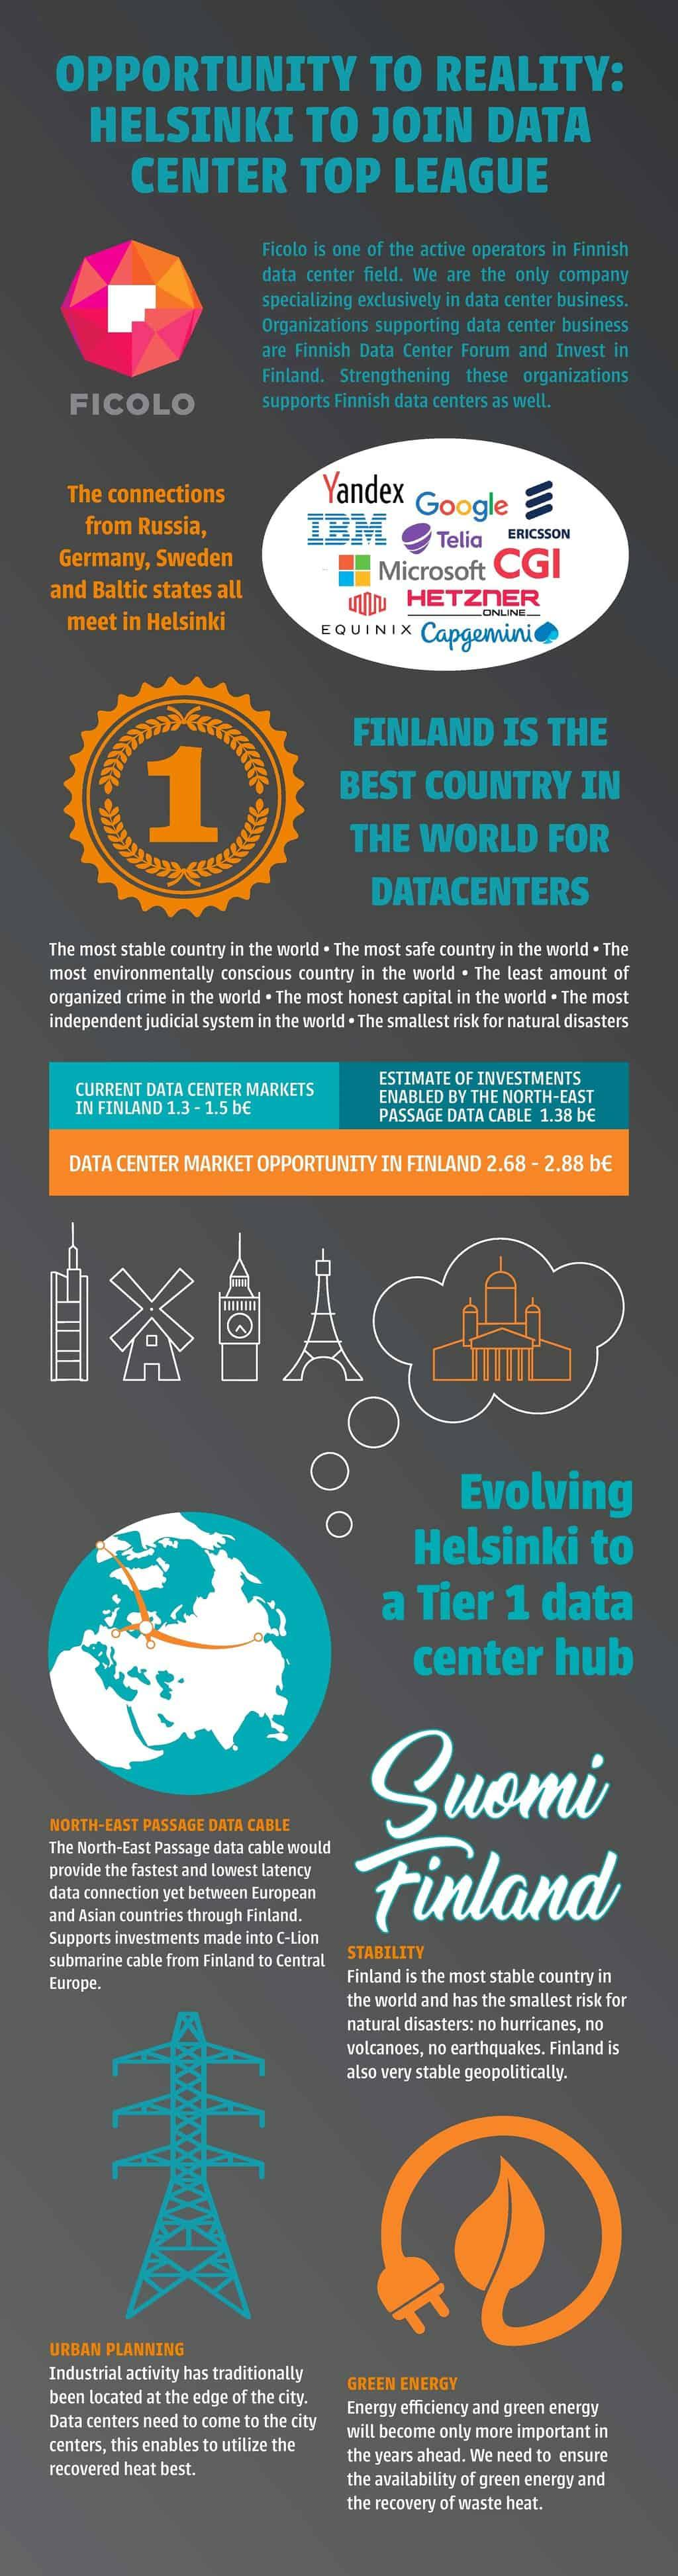 Helsinki to join data center top league infographic